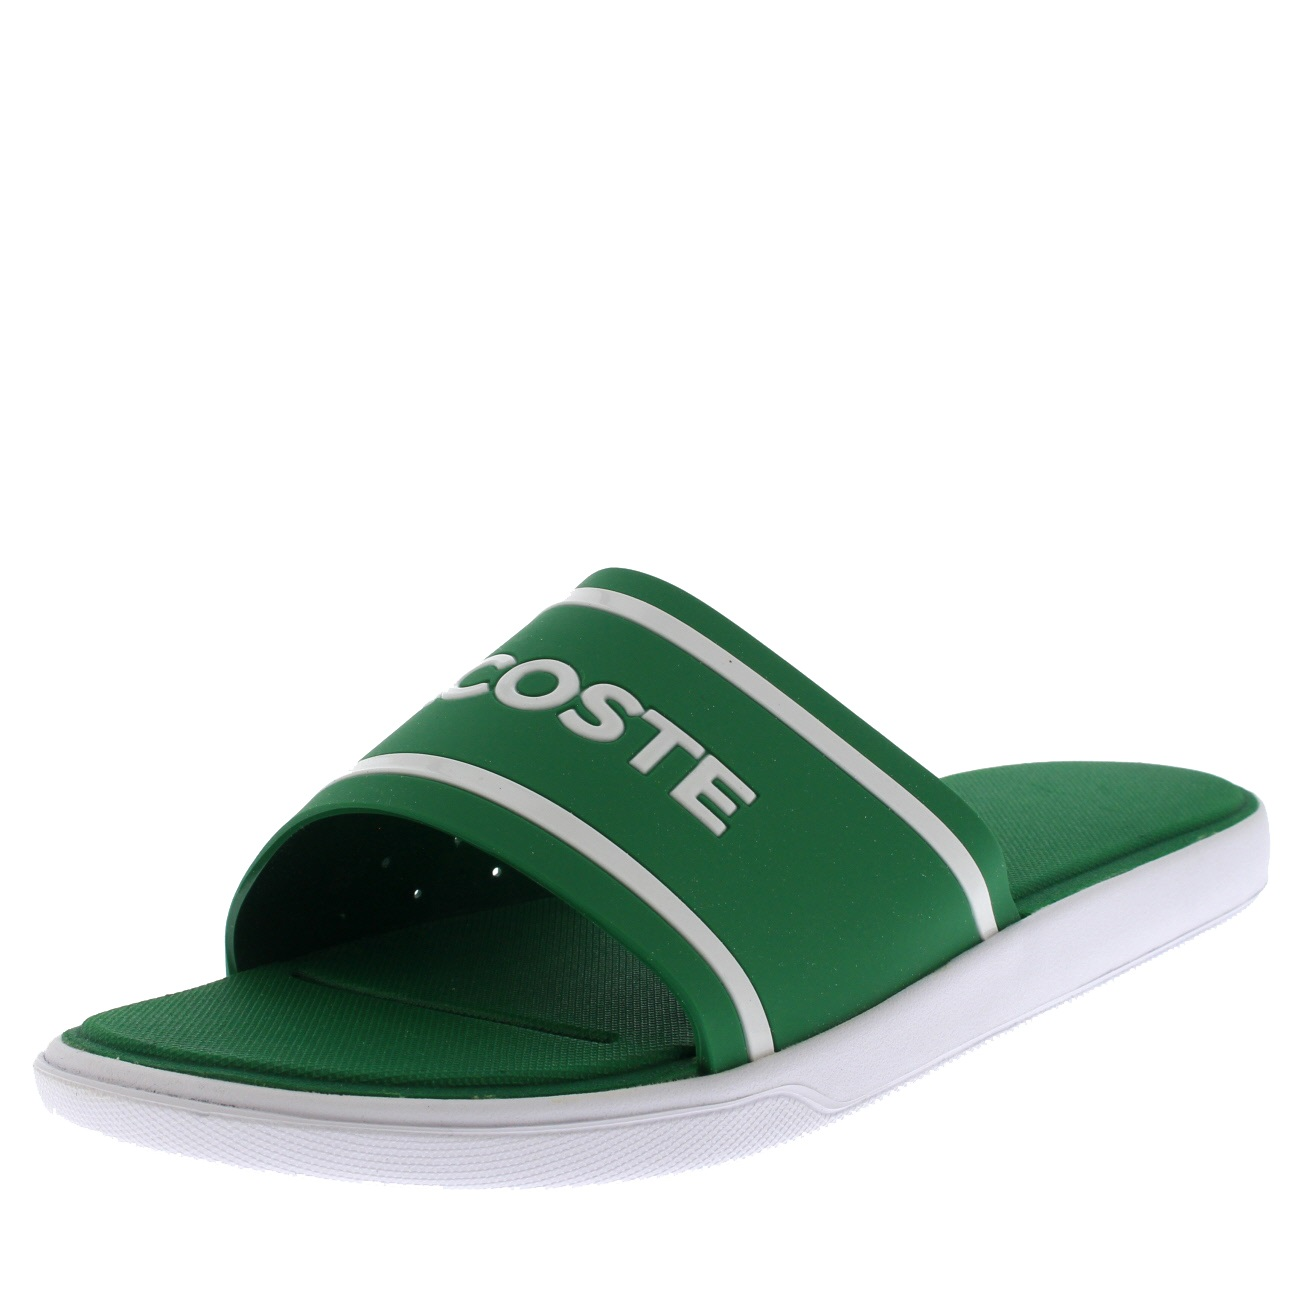 Lacoste Fluro Synthetic L.30 118 2 Slides